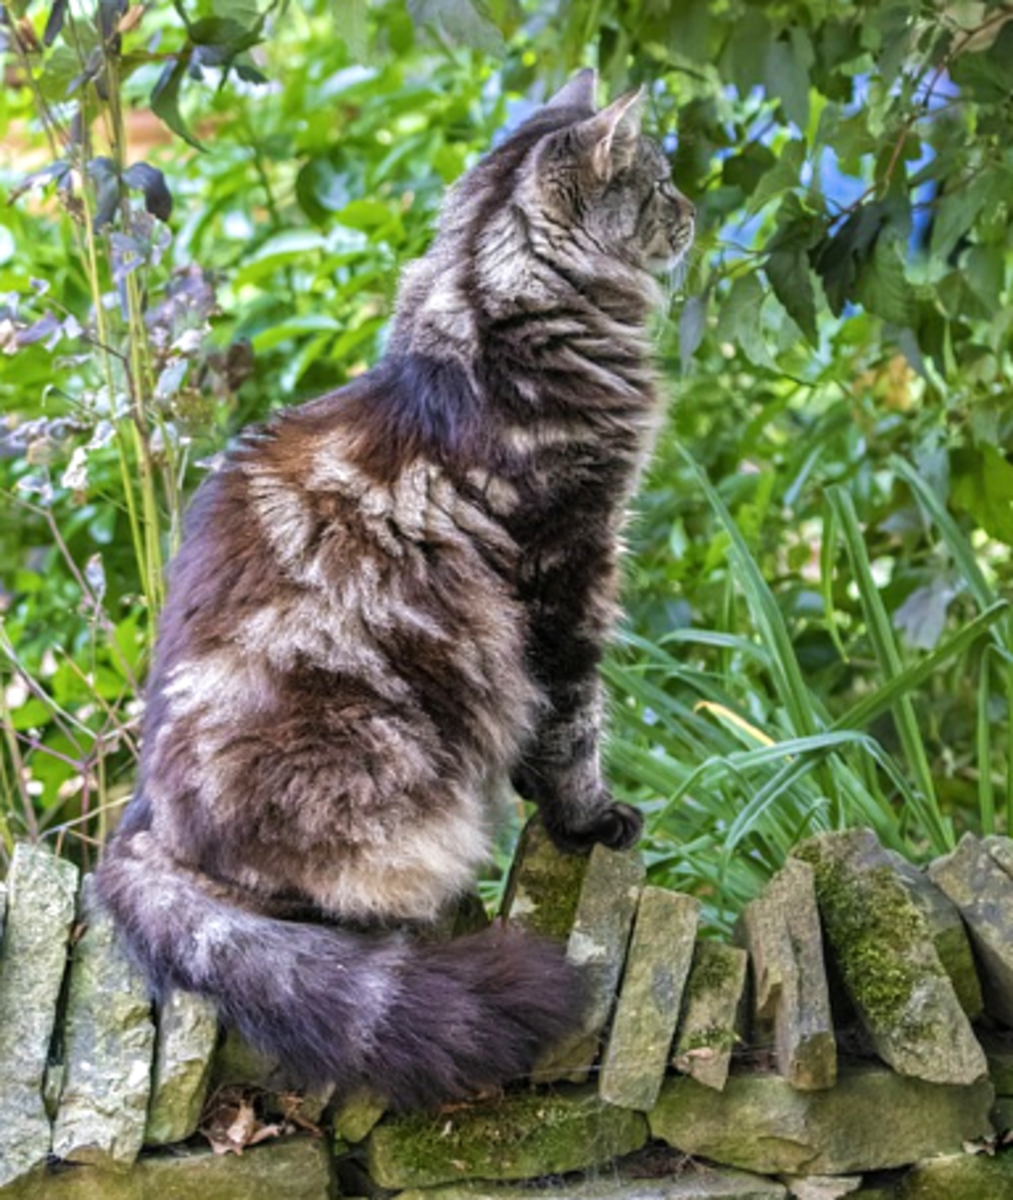 Cats instinctively know how to survive in the wild.